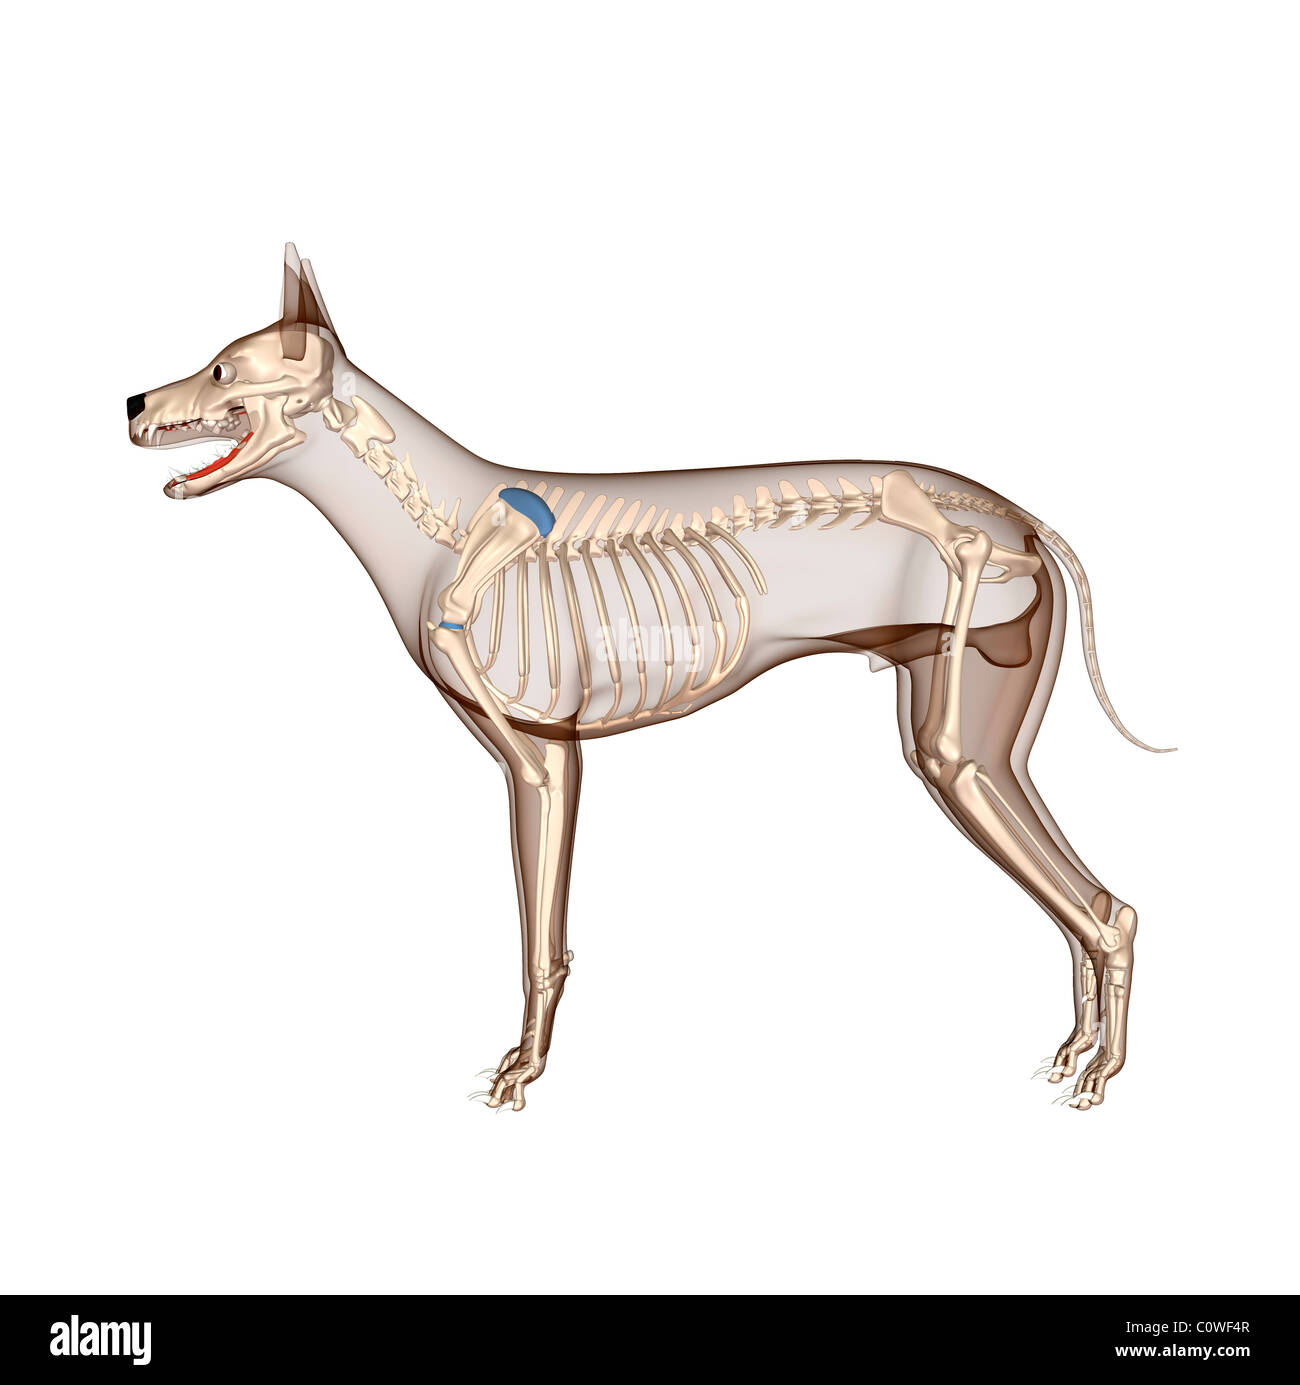 dog anatomy skeleton with transparent body - Stock Image